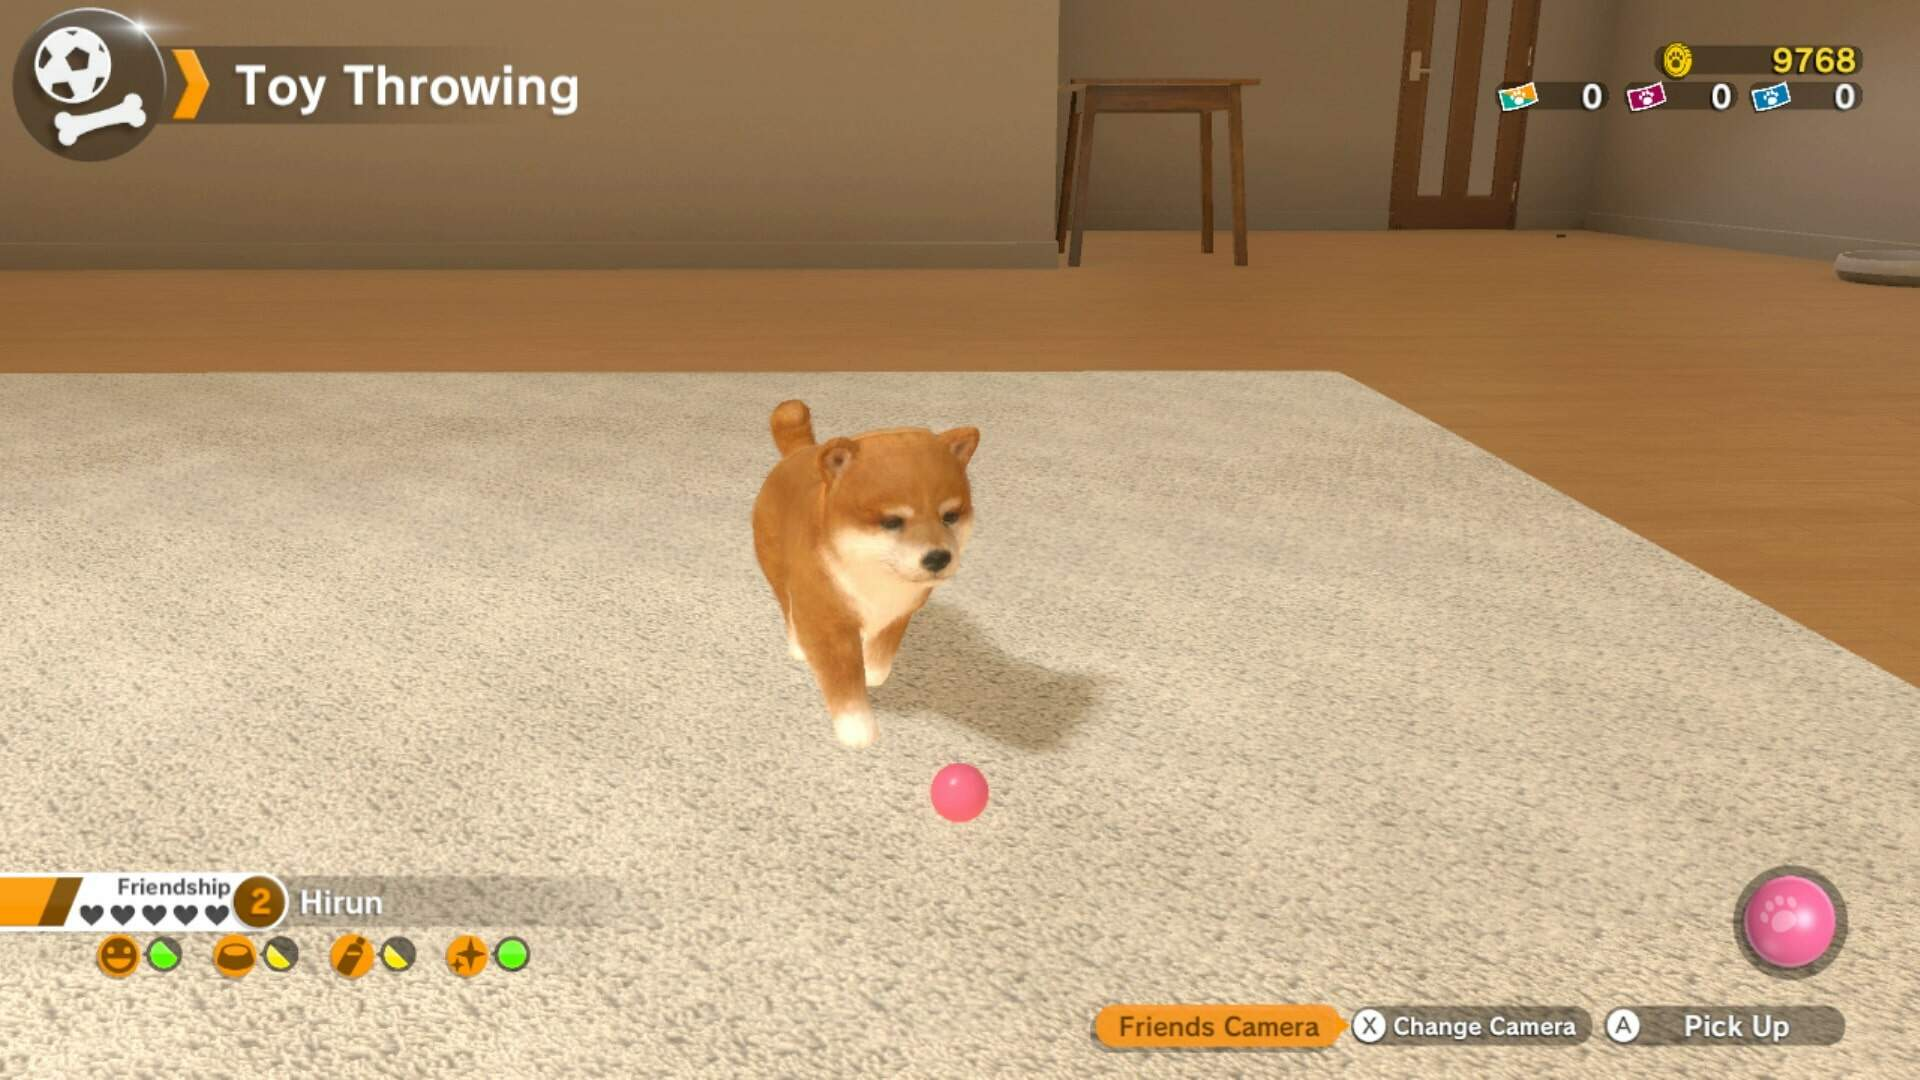 Little Friends Dogs and Cats: Is it Nintendogs?